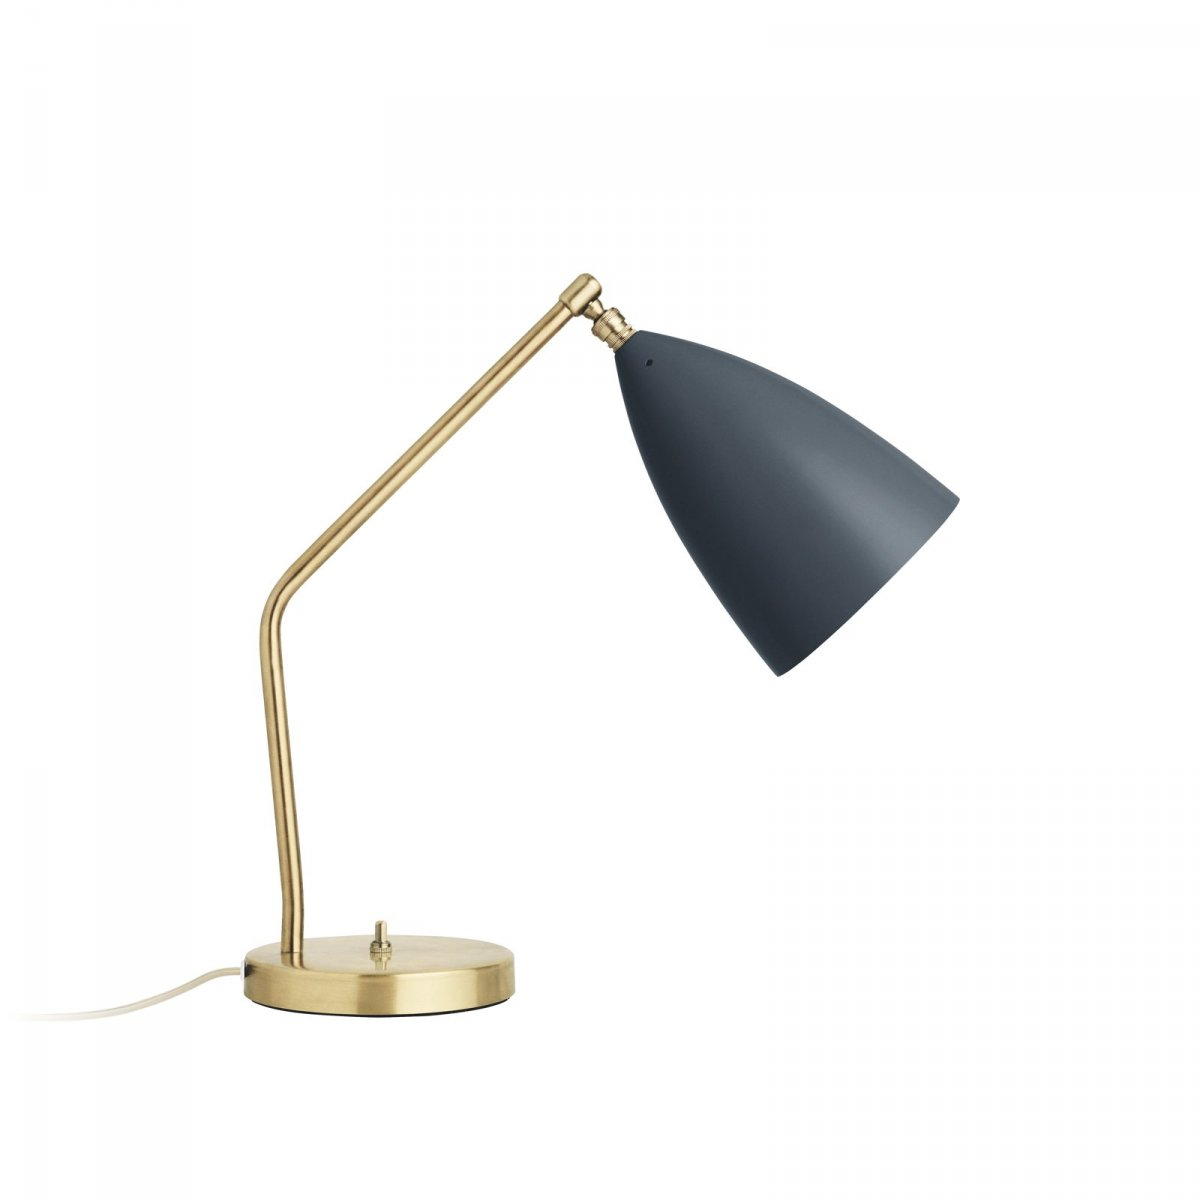 Grossman Gräshoppa Task Table Lamp, anthracite gray.